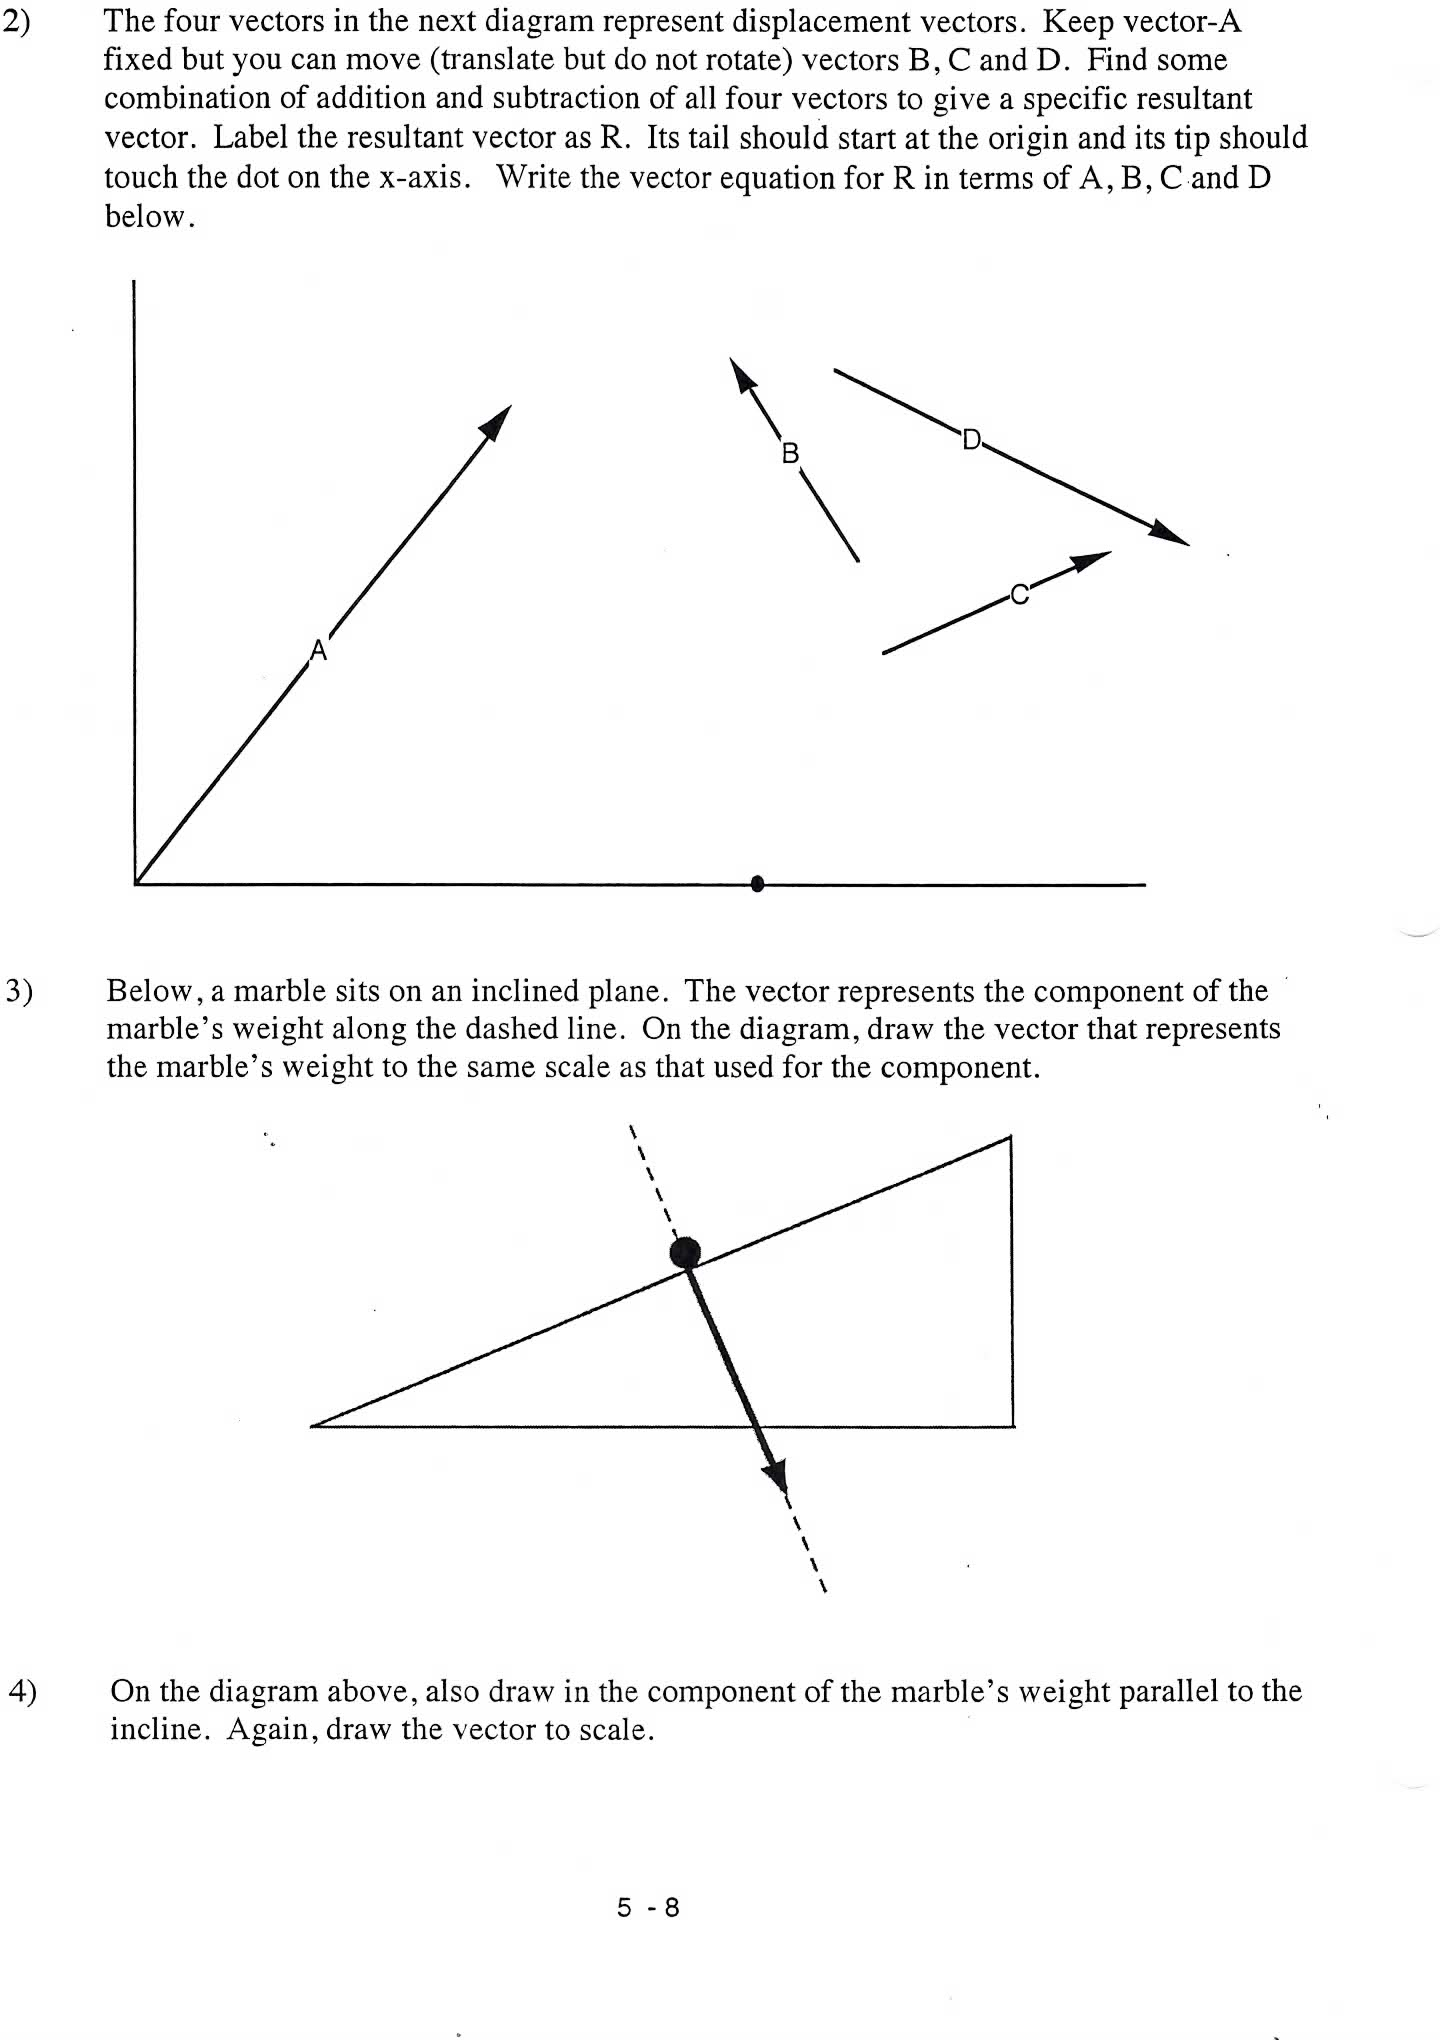 Free Worksheet Centripetal Force Worksheet physics archive february 14 2013 chegg com 1 answer